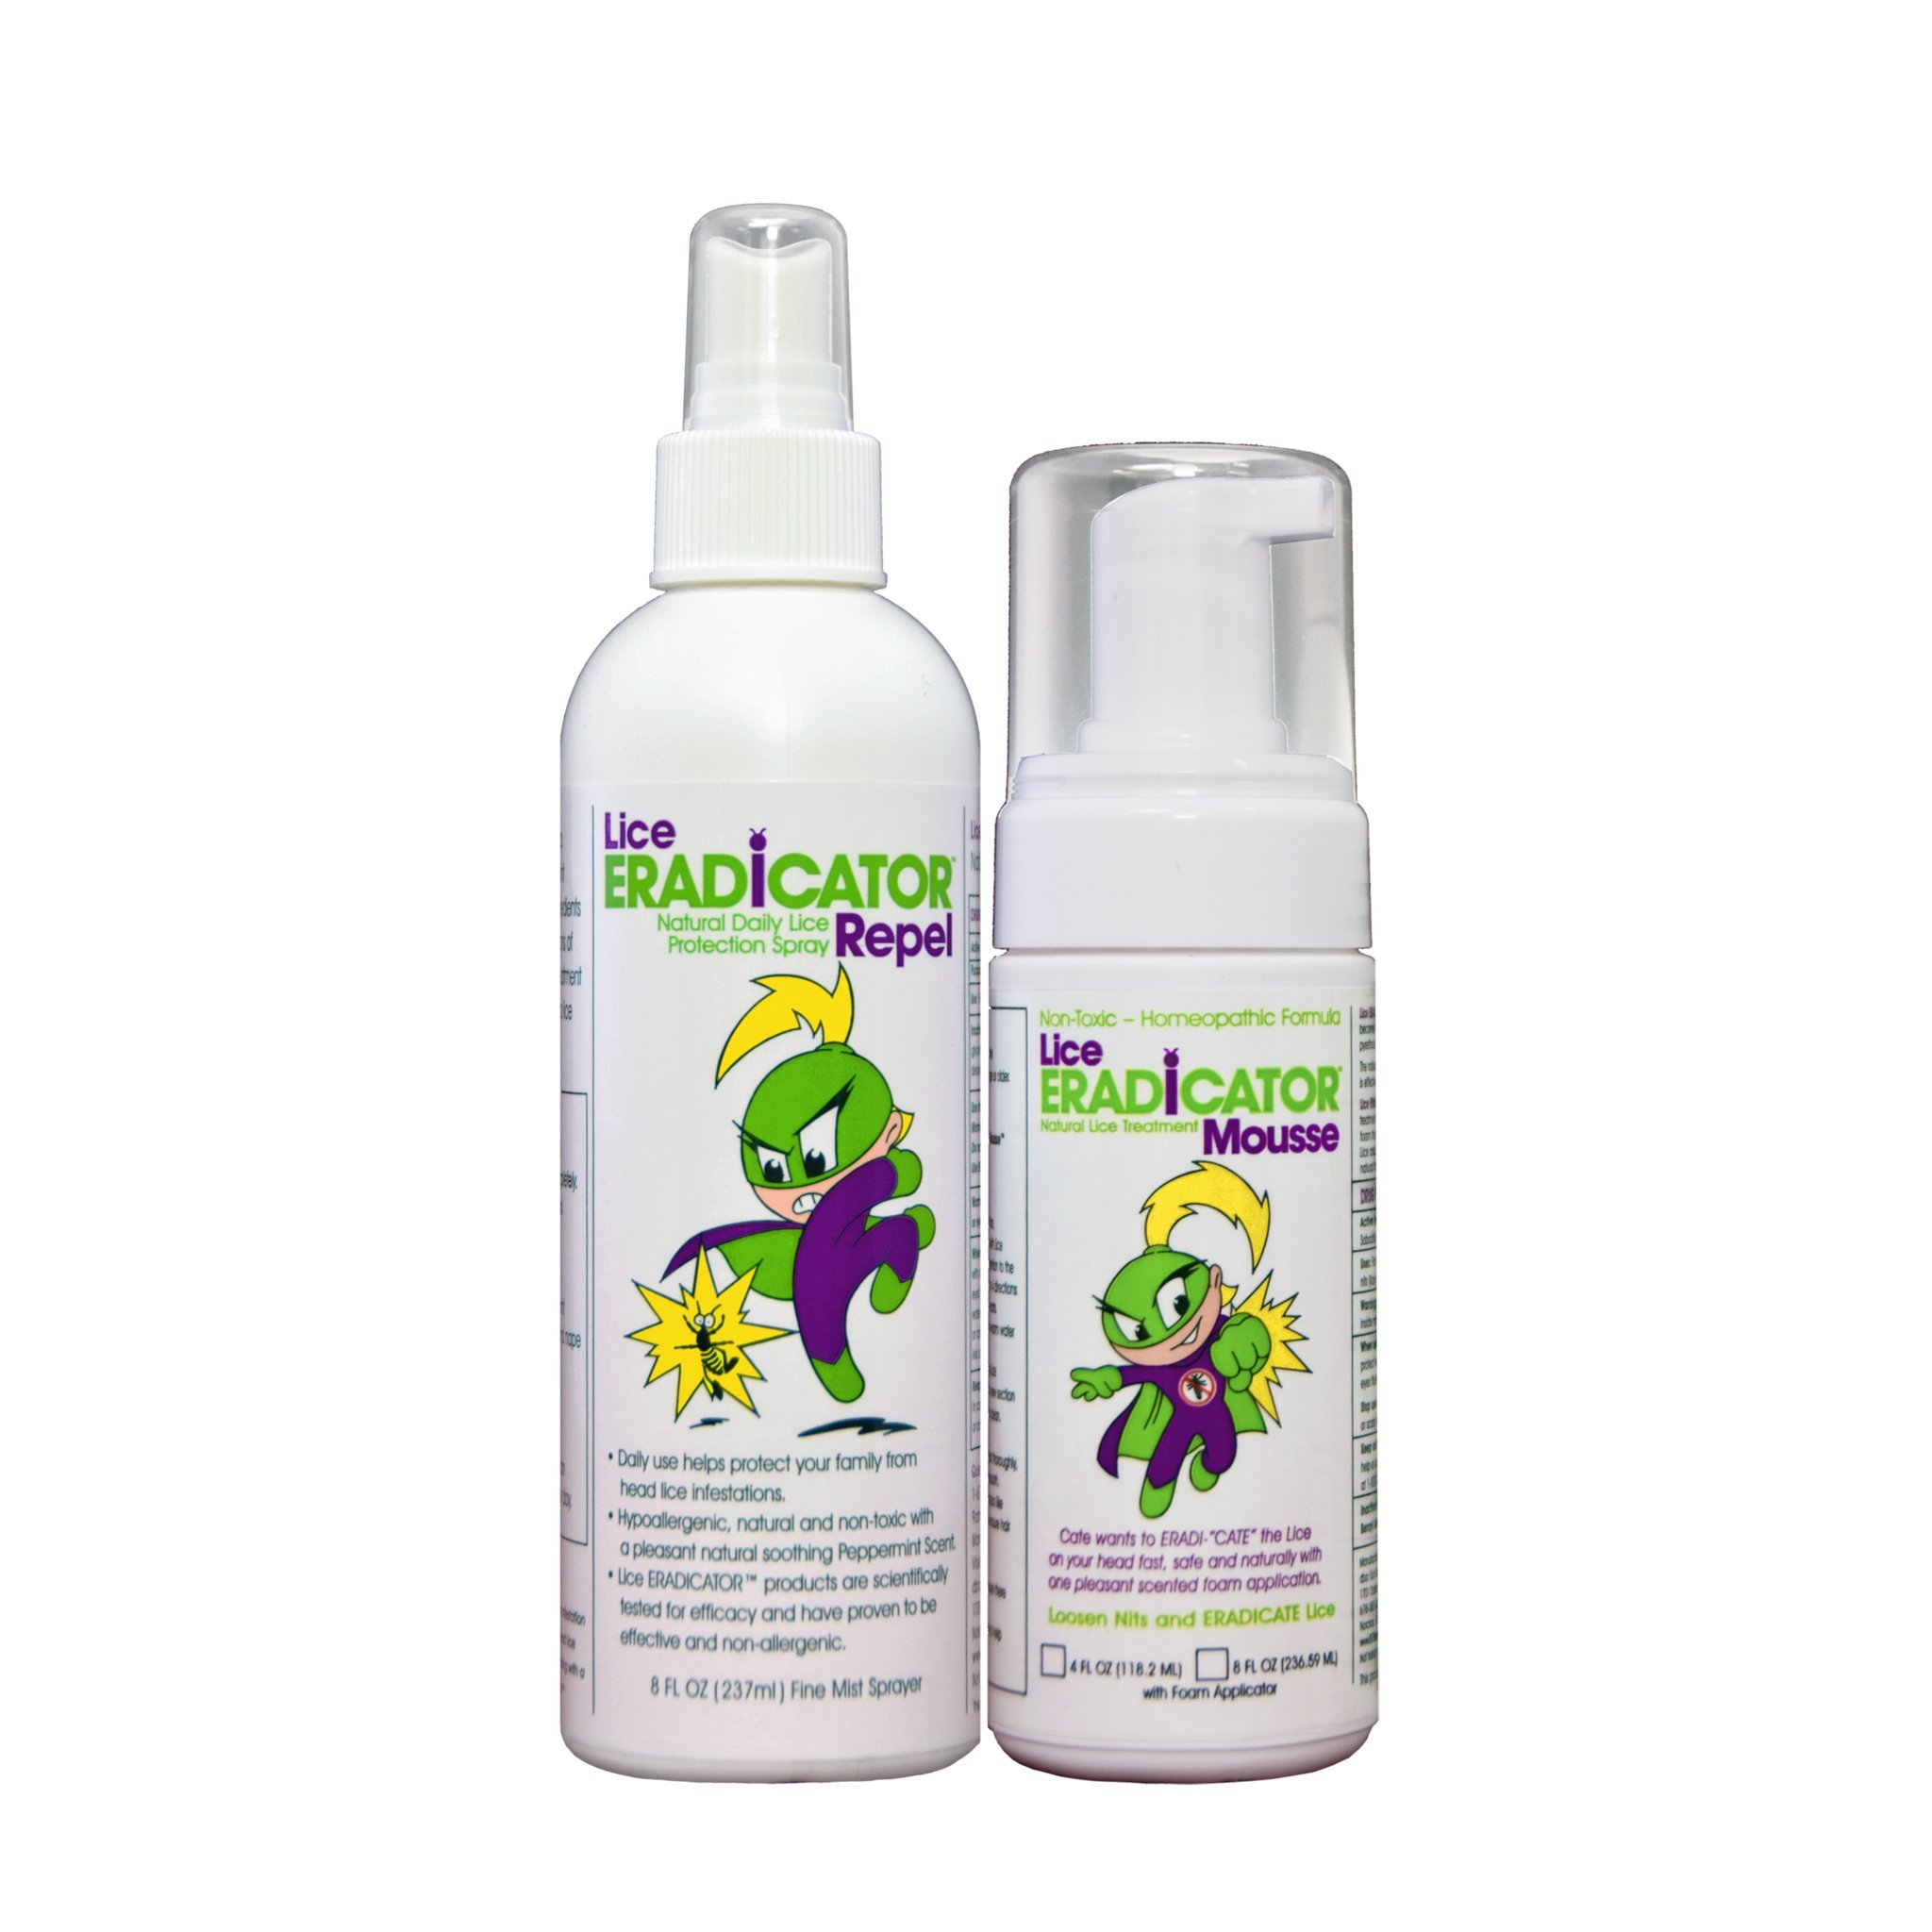 Lice ERADICATOR Foam MOUSSE Treatment and REPEL Protection Spray Set / Natural, Non-Toxic, Homeopathic Peppermint Formula / 4 Ounce Foam Applicator Spray and 8 Ounce Repellent Spray (2 Pack Combo Kit)